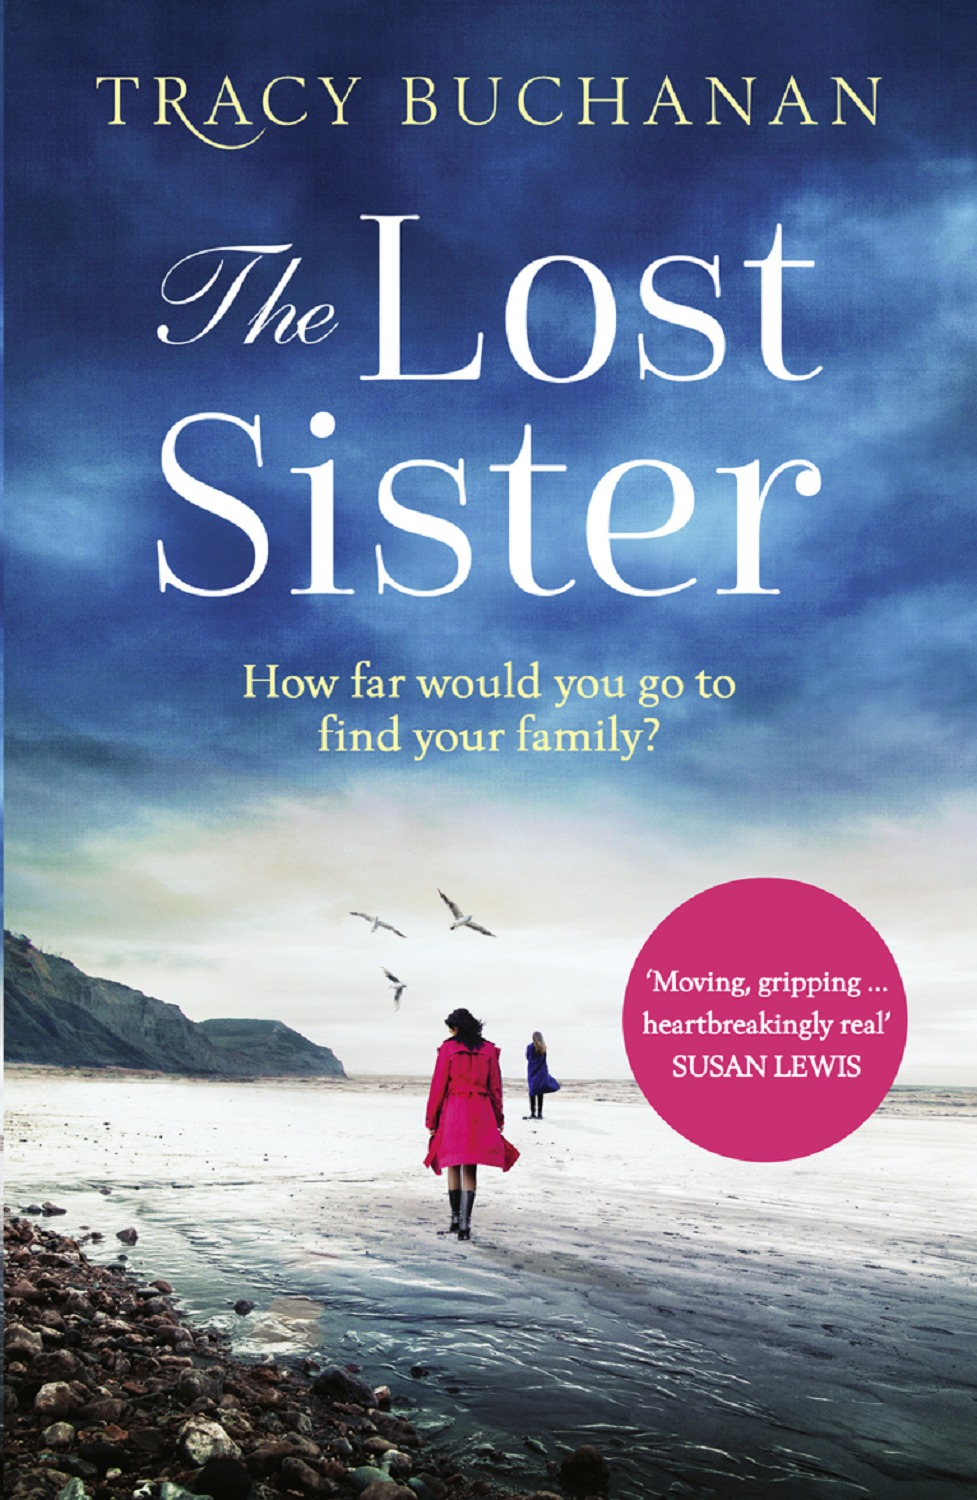 Tracy Buchanan The Lost Sister: A gripping emotional page turner with a breathtaking twist laura elliot the lost sister